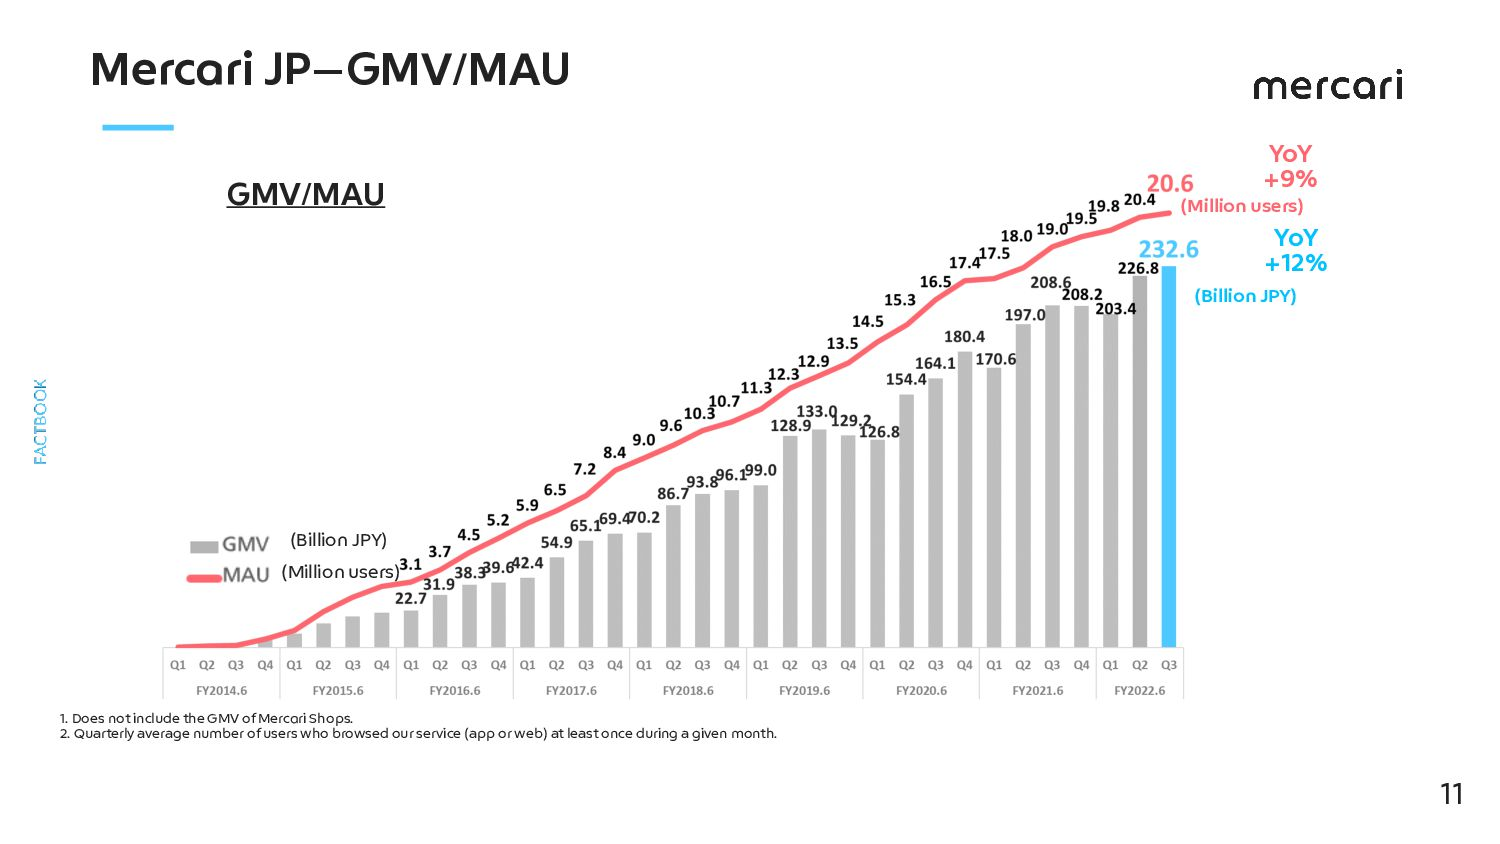 By the Numbers (FY2021.6 JP/Full Year) Source: ...